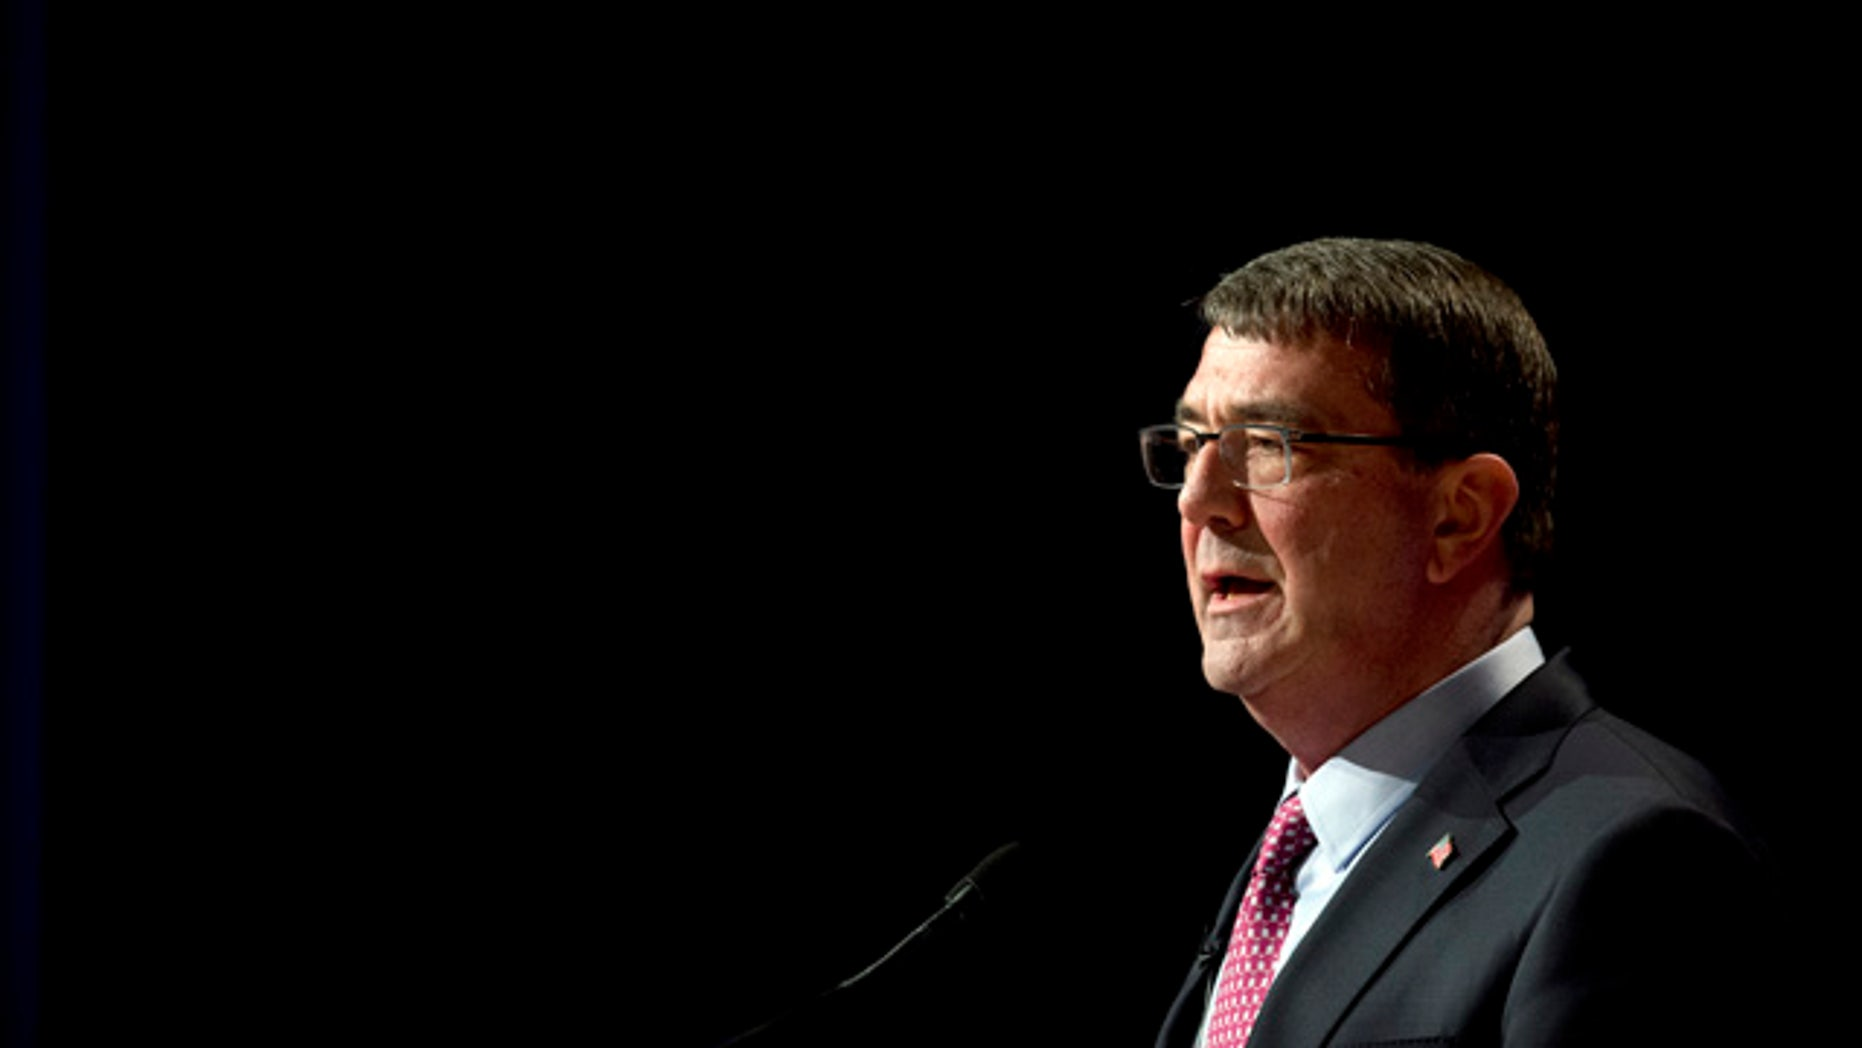 March 6, 2015: Defense Secretary Ash Carter speaks during a ceremonial swearing-in ceremony at the Pentagon.  Carter is considering easing some military enlistment standards as part of a broader set of initiatives to better attract and keep quality service members and civilians across the Defense Department. (AP Photo/Manuel Balce Ceneta)